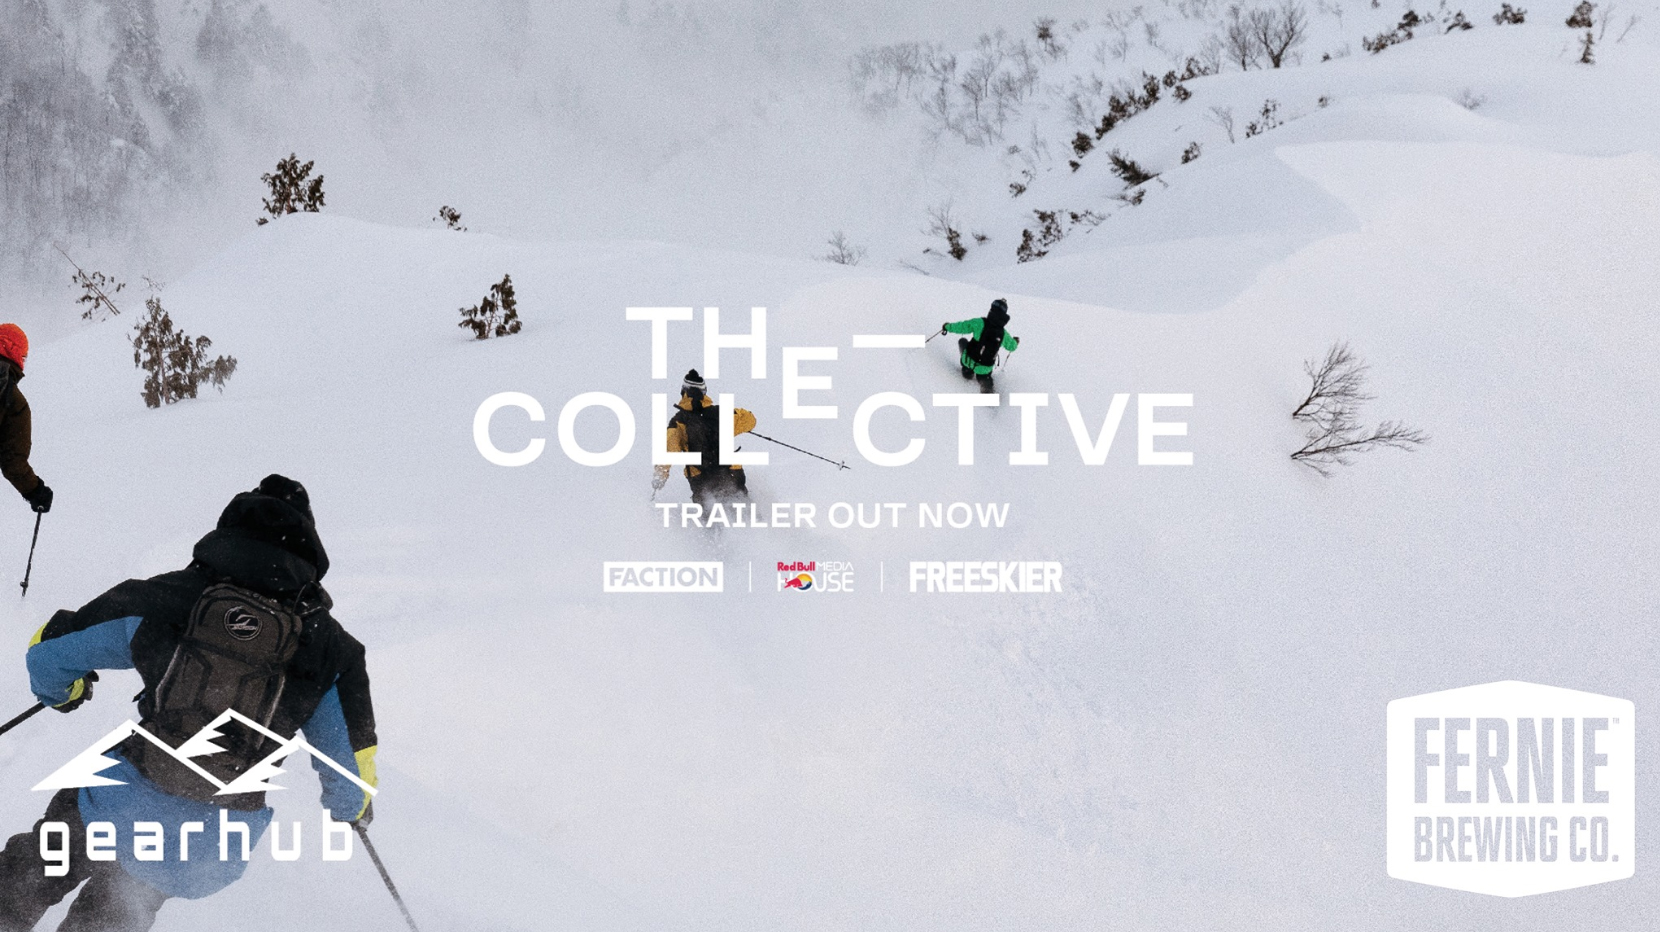 The Collective - A Faction Ski Film